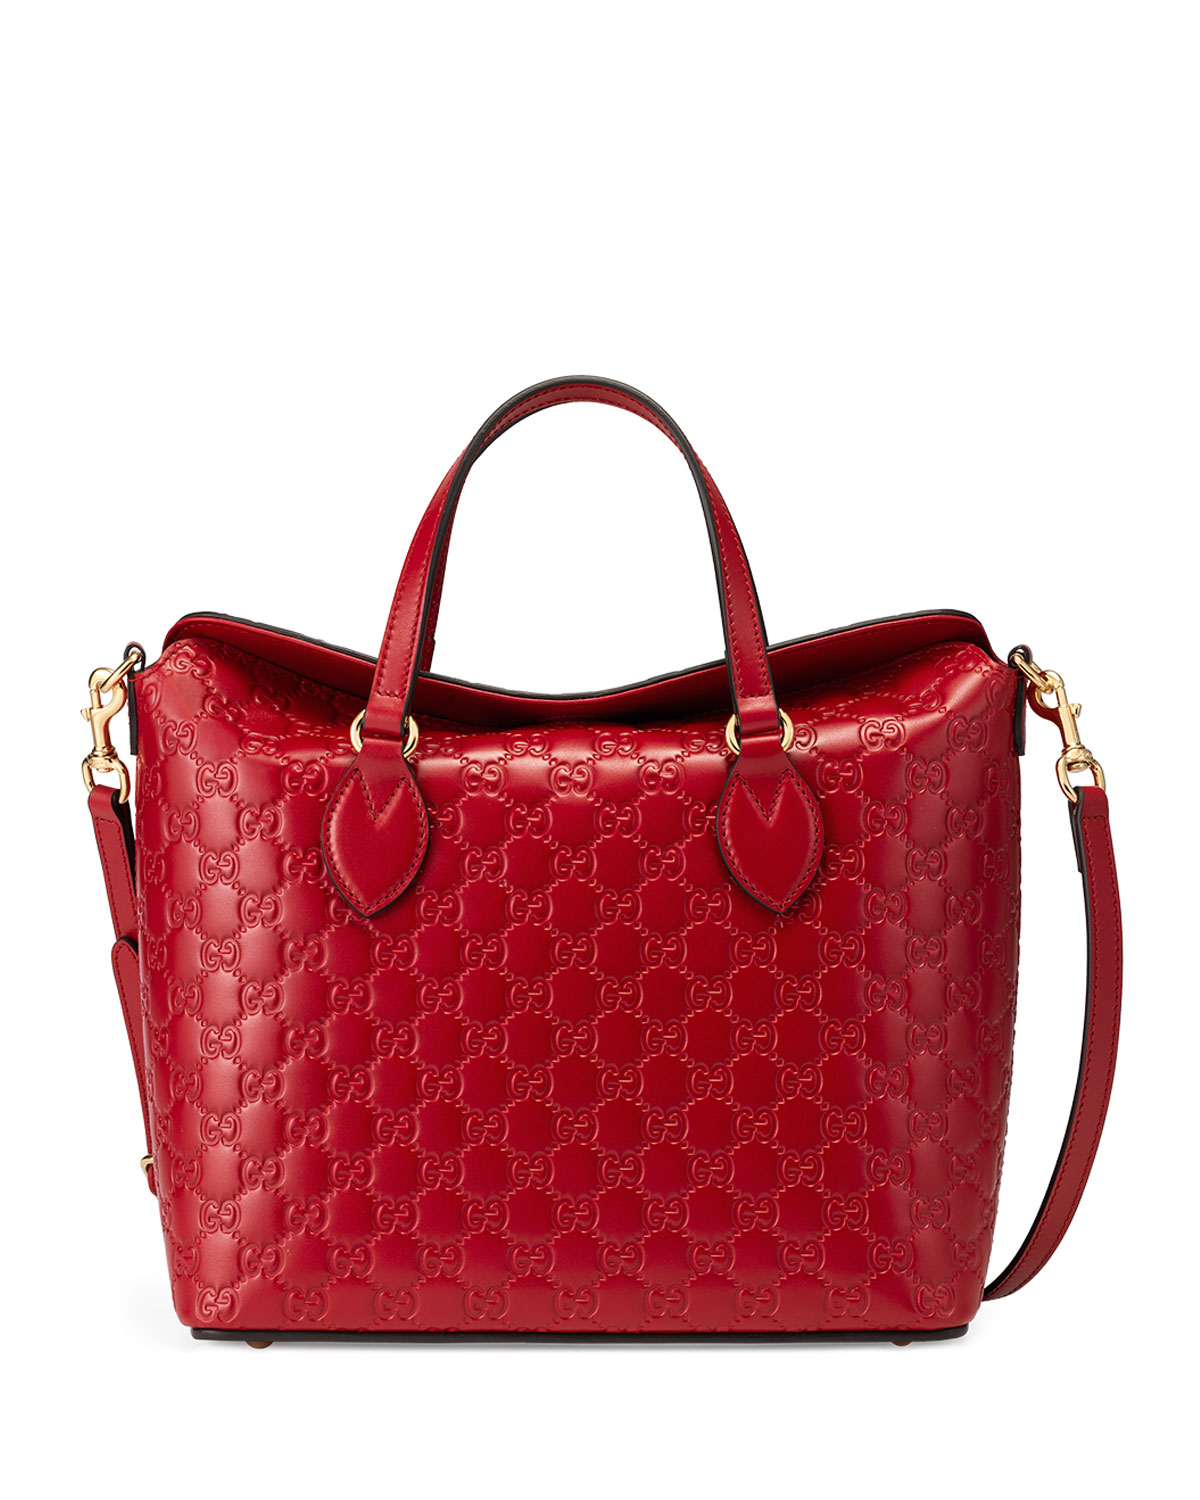 127f27b458d4 Gucci Guccissima Leather Top-Handle Bag, Red | Neiman Marcus